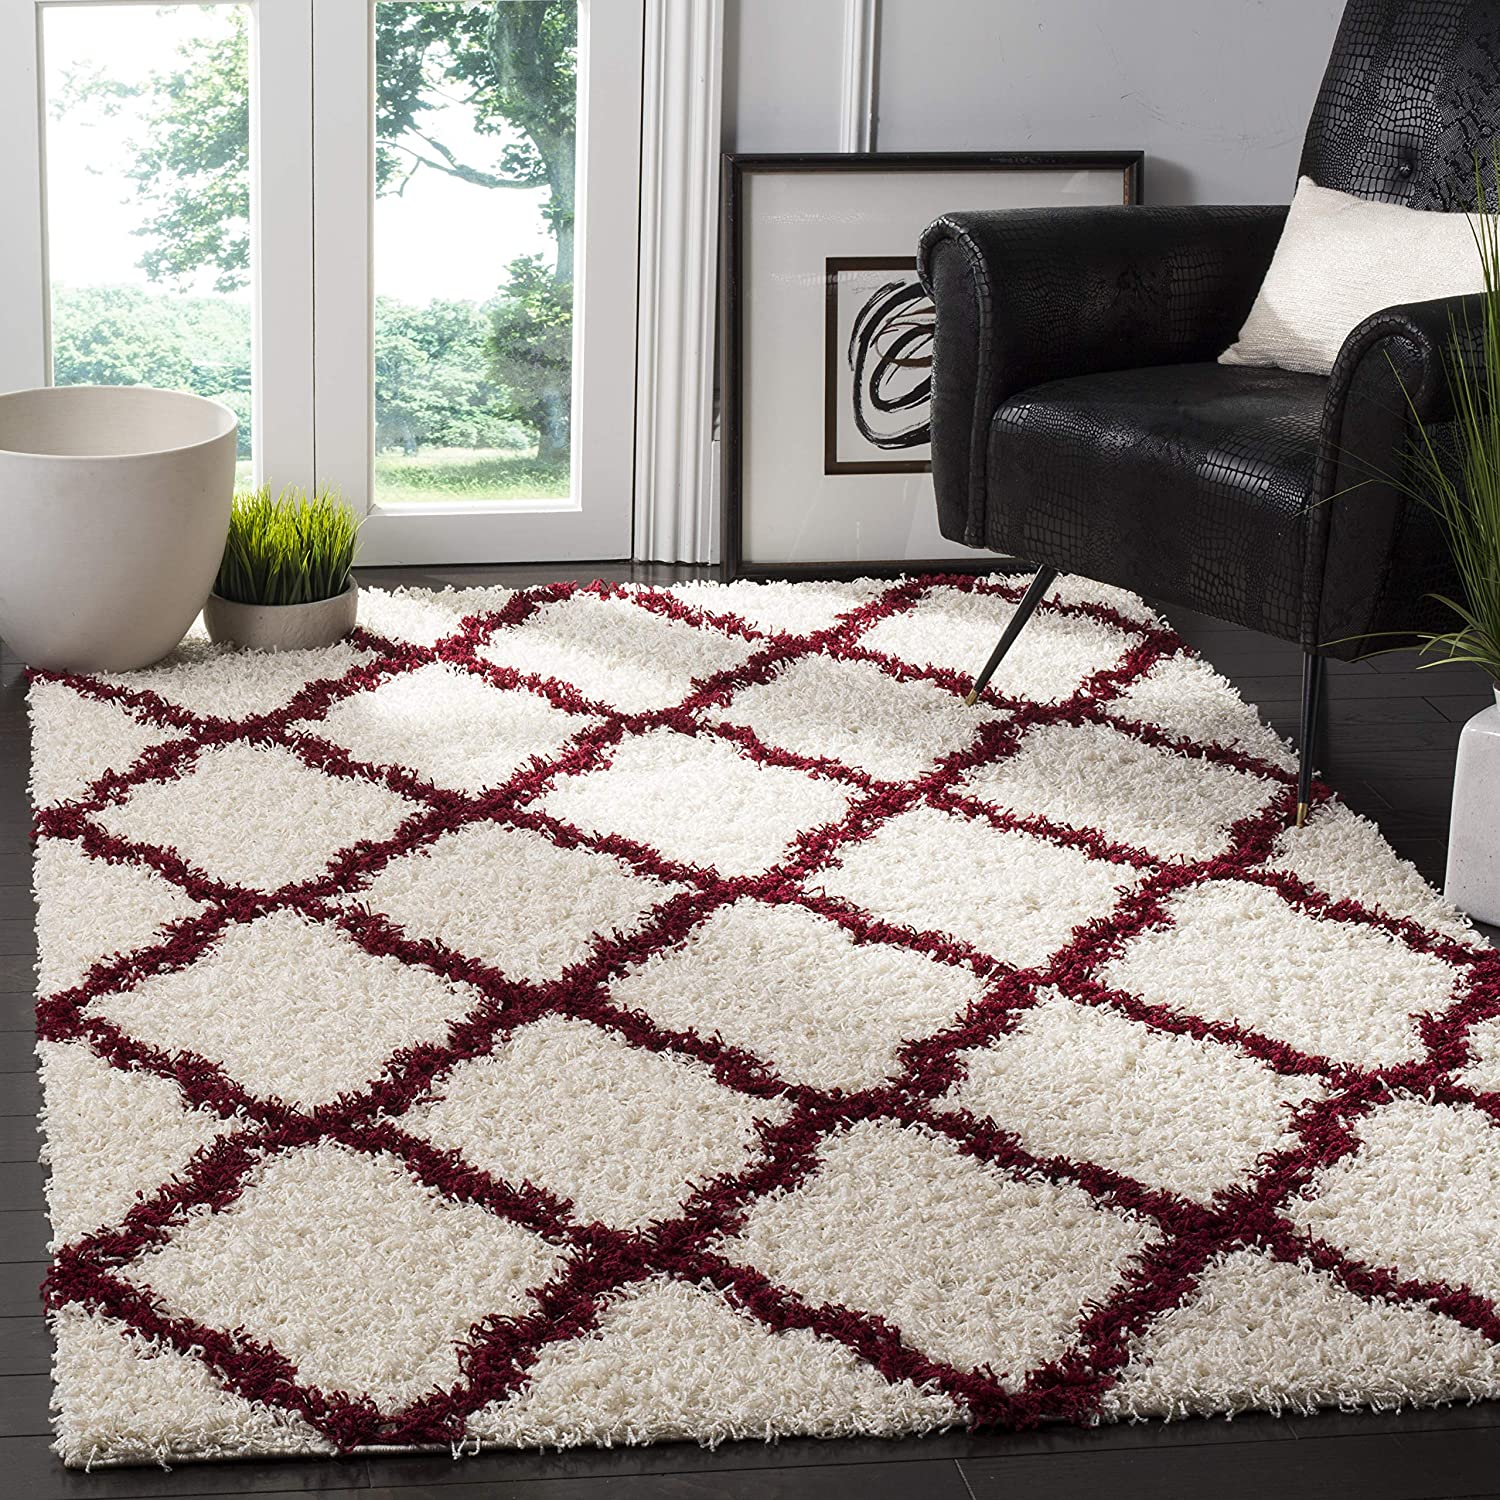 SAFAVIEH Dallas Shag Collection SGD257R Trellis Non-Shedding Living Room Bedroom Dining Room Entryway Plush 1.5-inch Thick Area Rug, 5'1